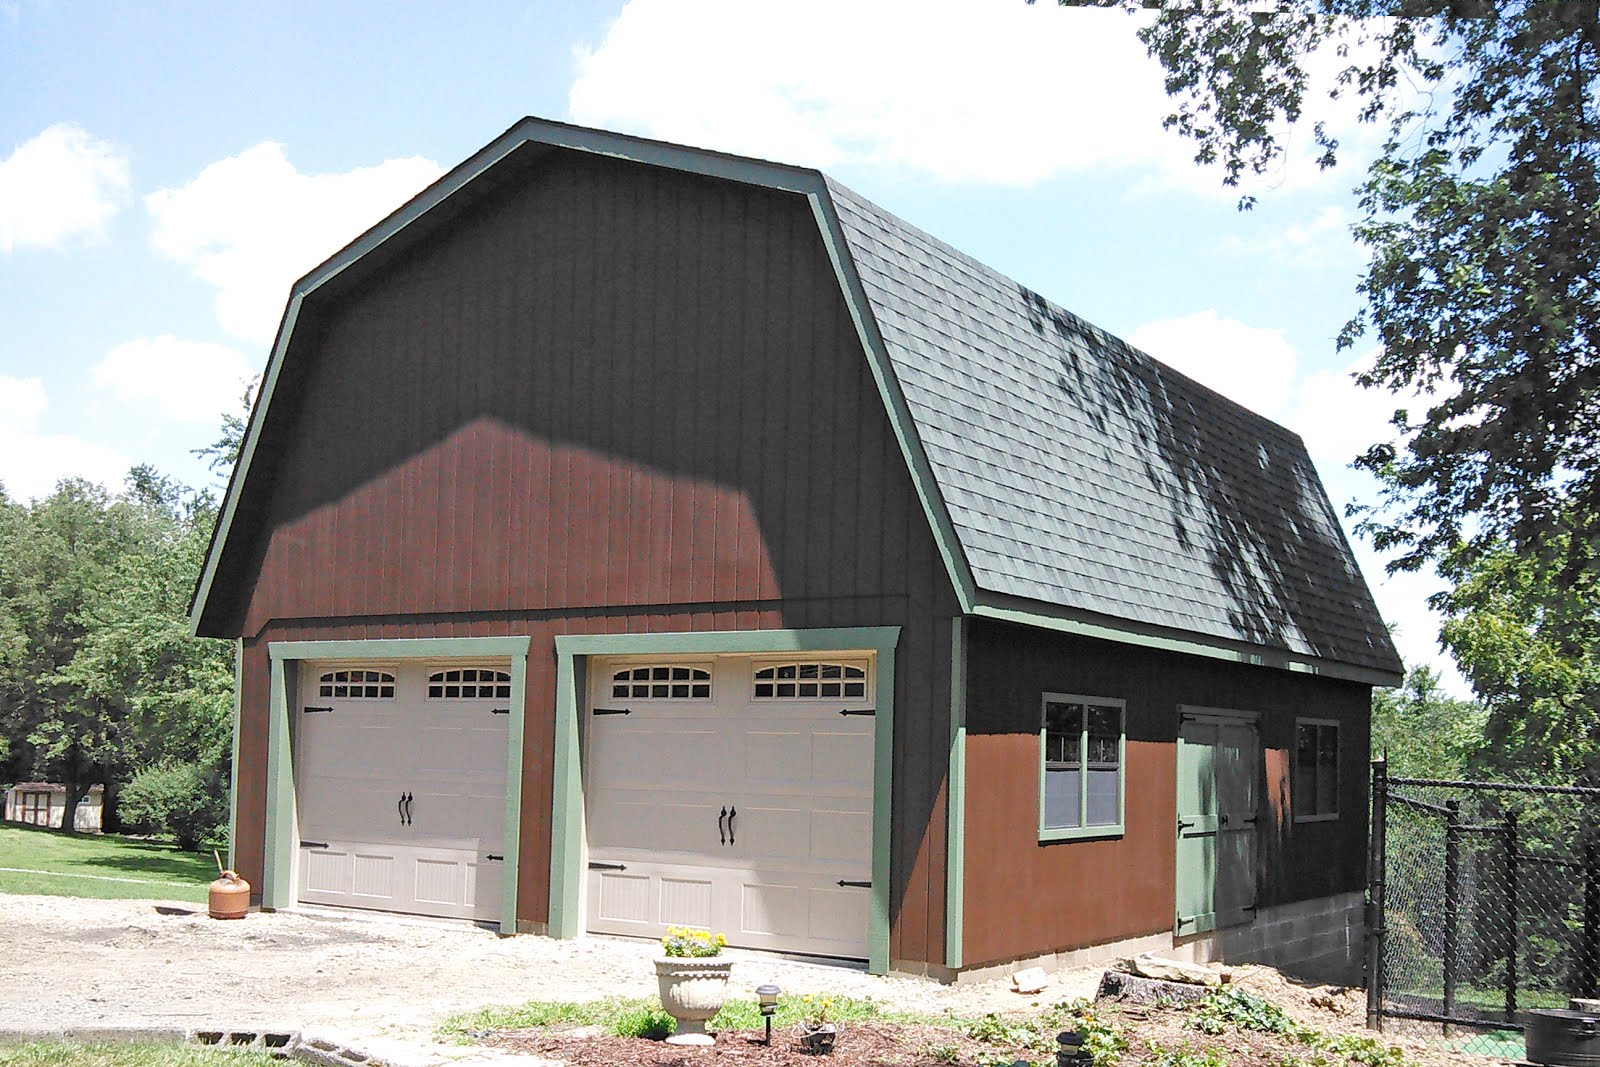 Sheds Unlimited Llc Prefab Car Garages For Sale In Pa Nj: Three Car Garages In Maryland And North Carolina